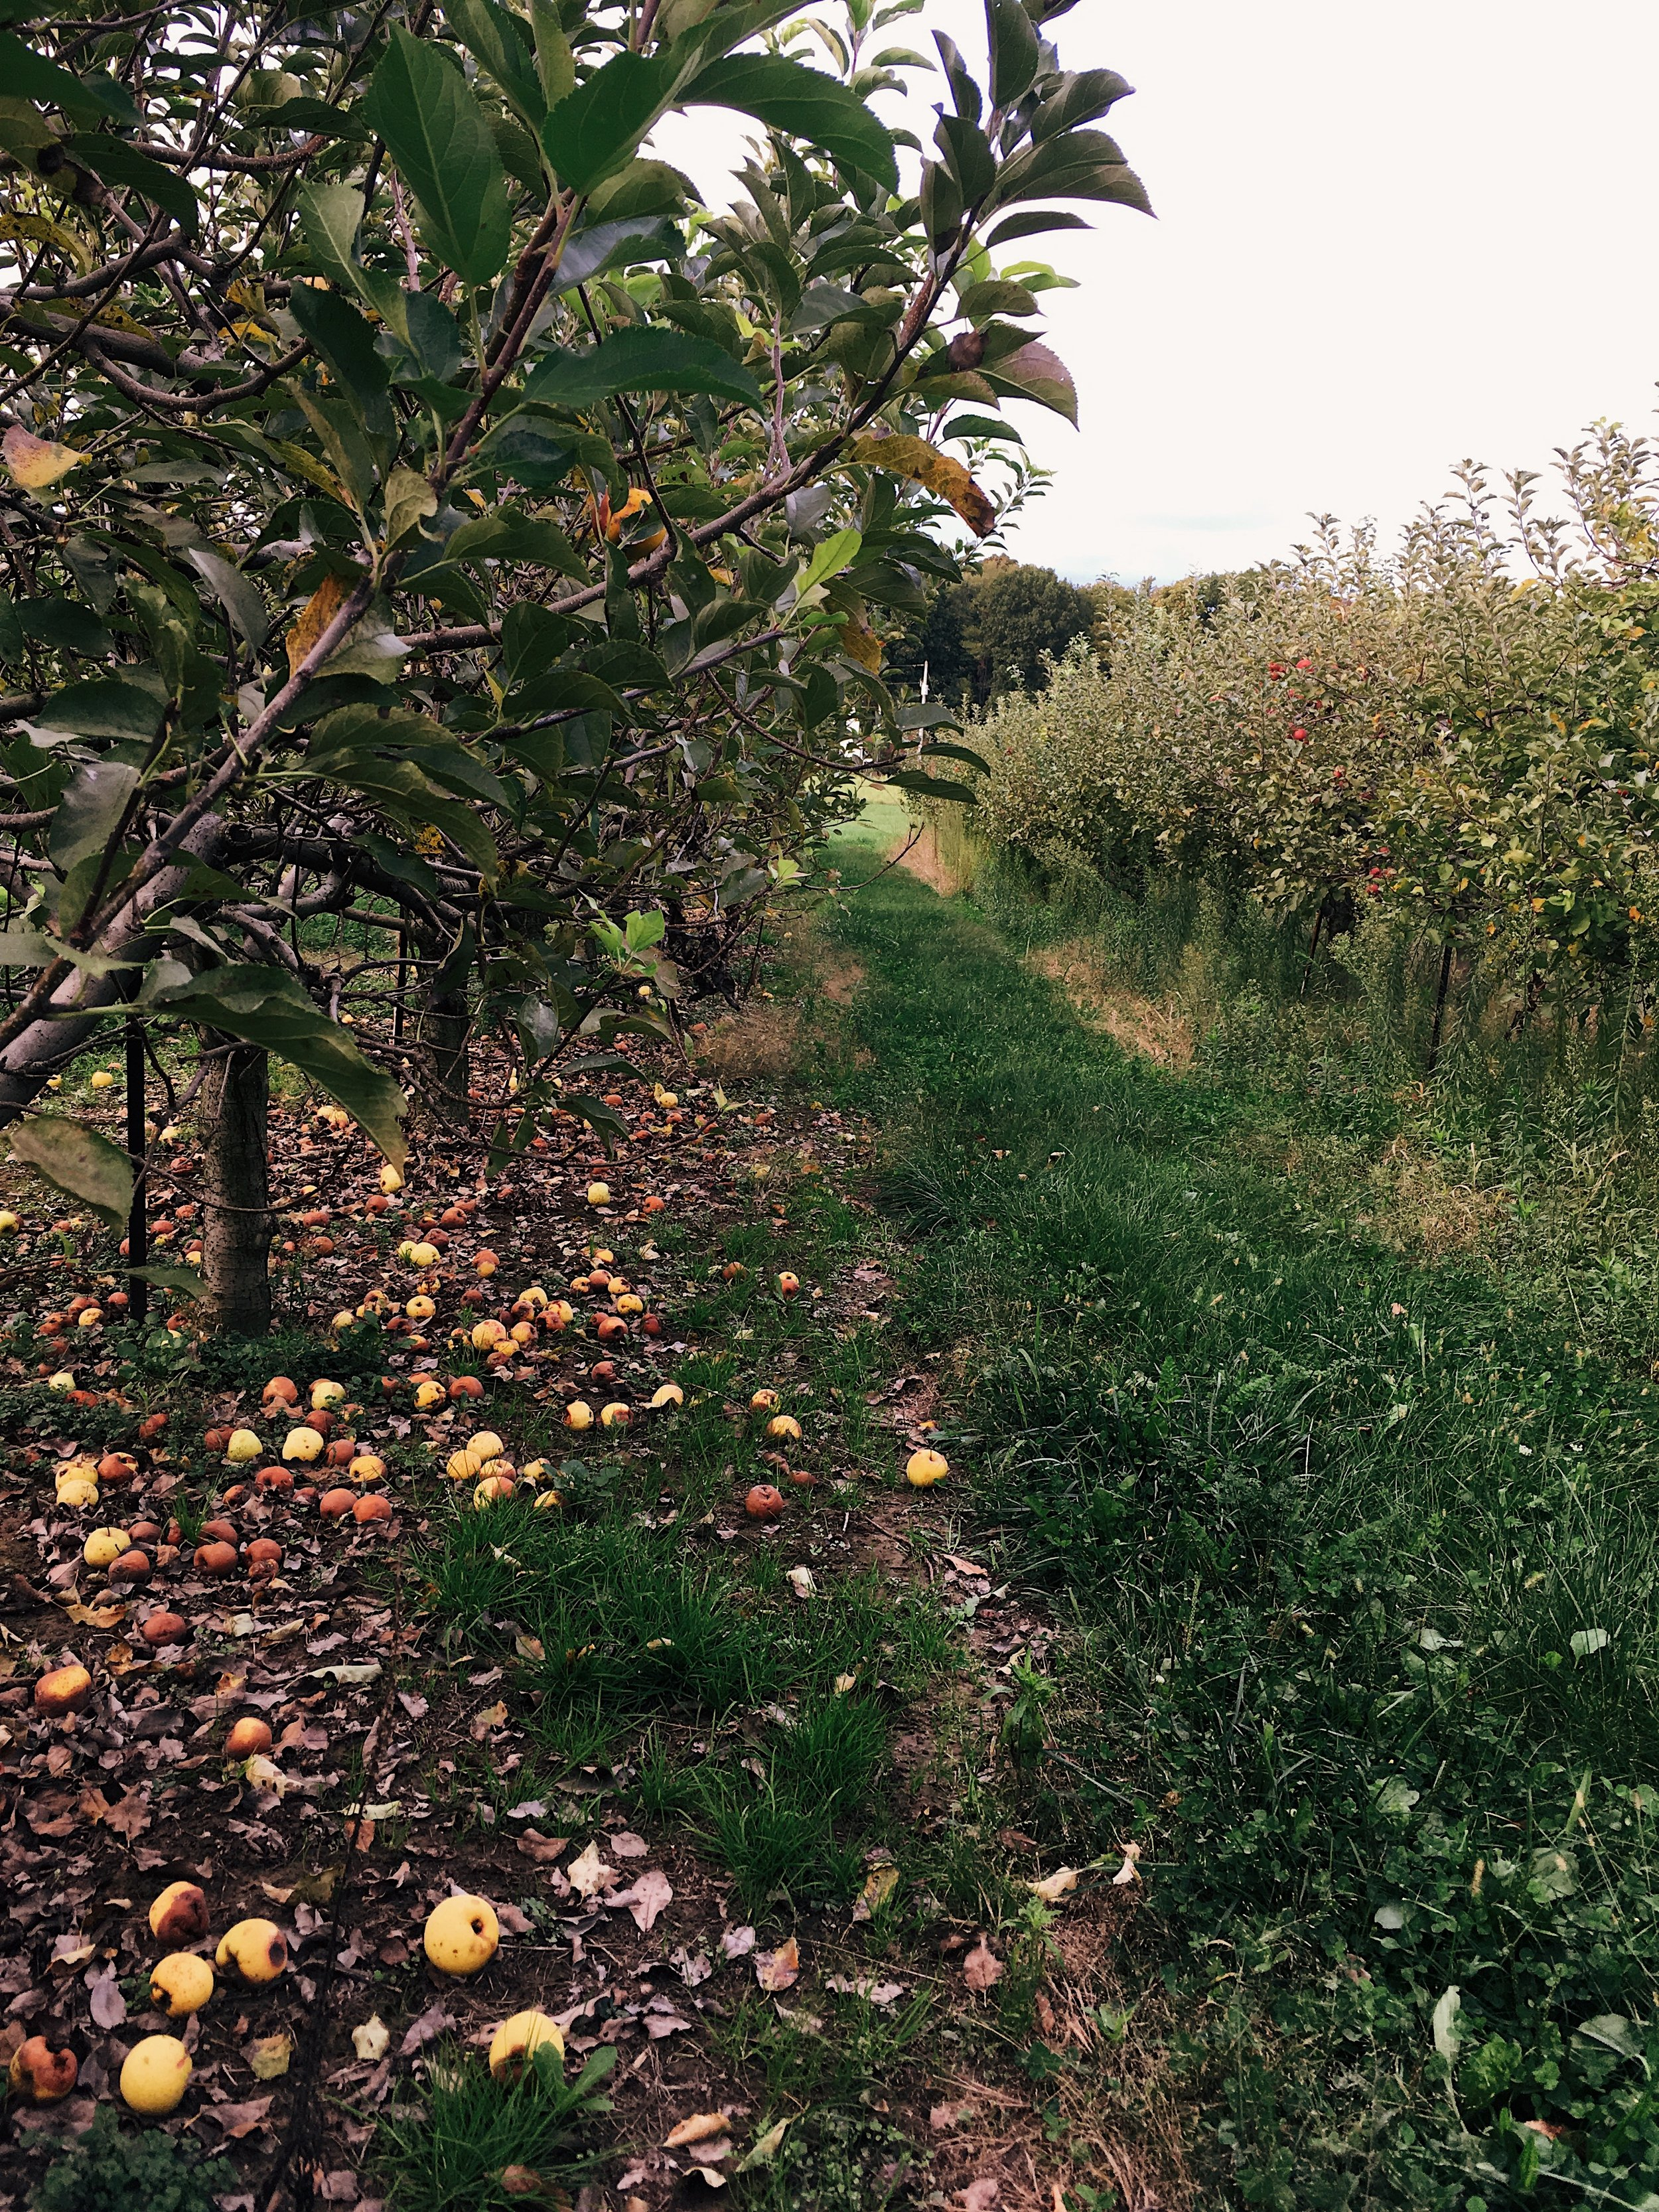 Apple Orchard Ohio Organic Image by Samantha Spigos